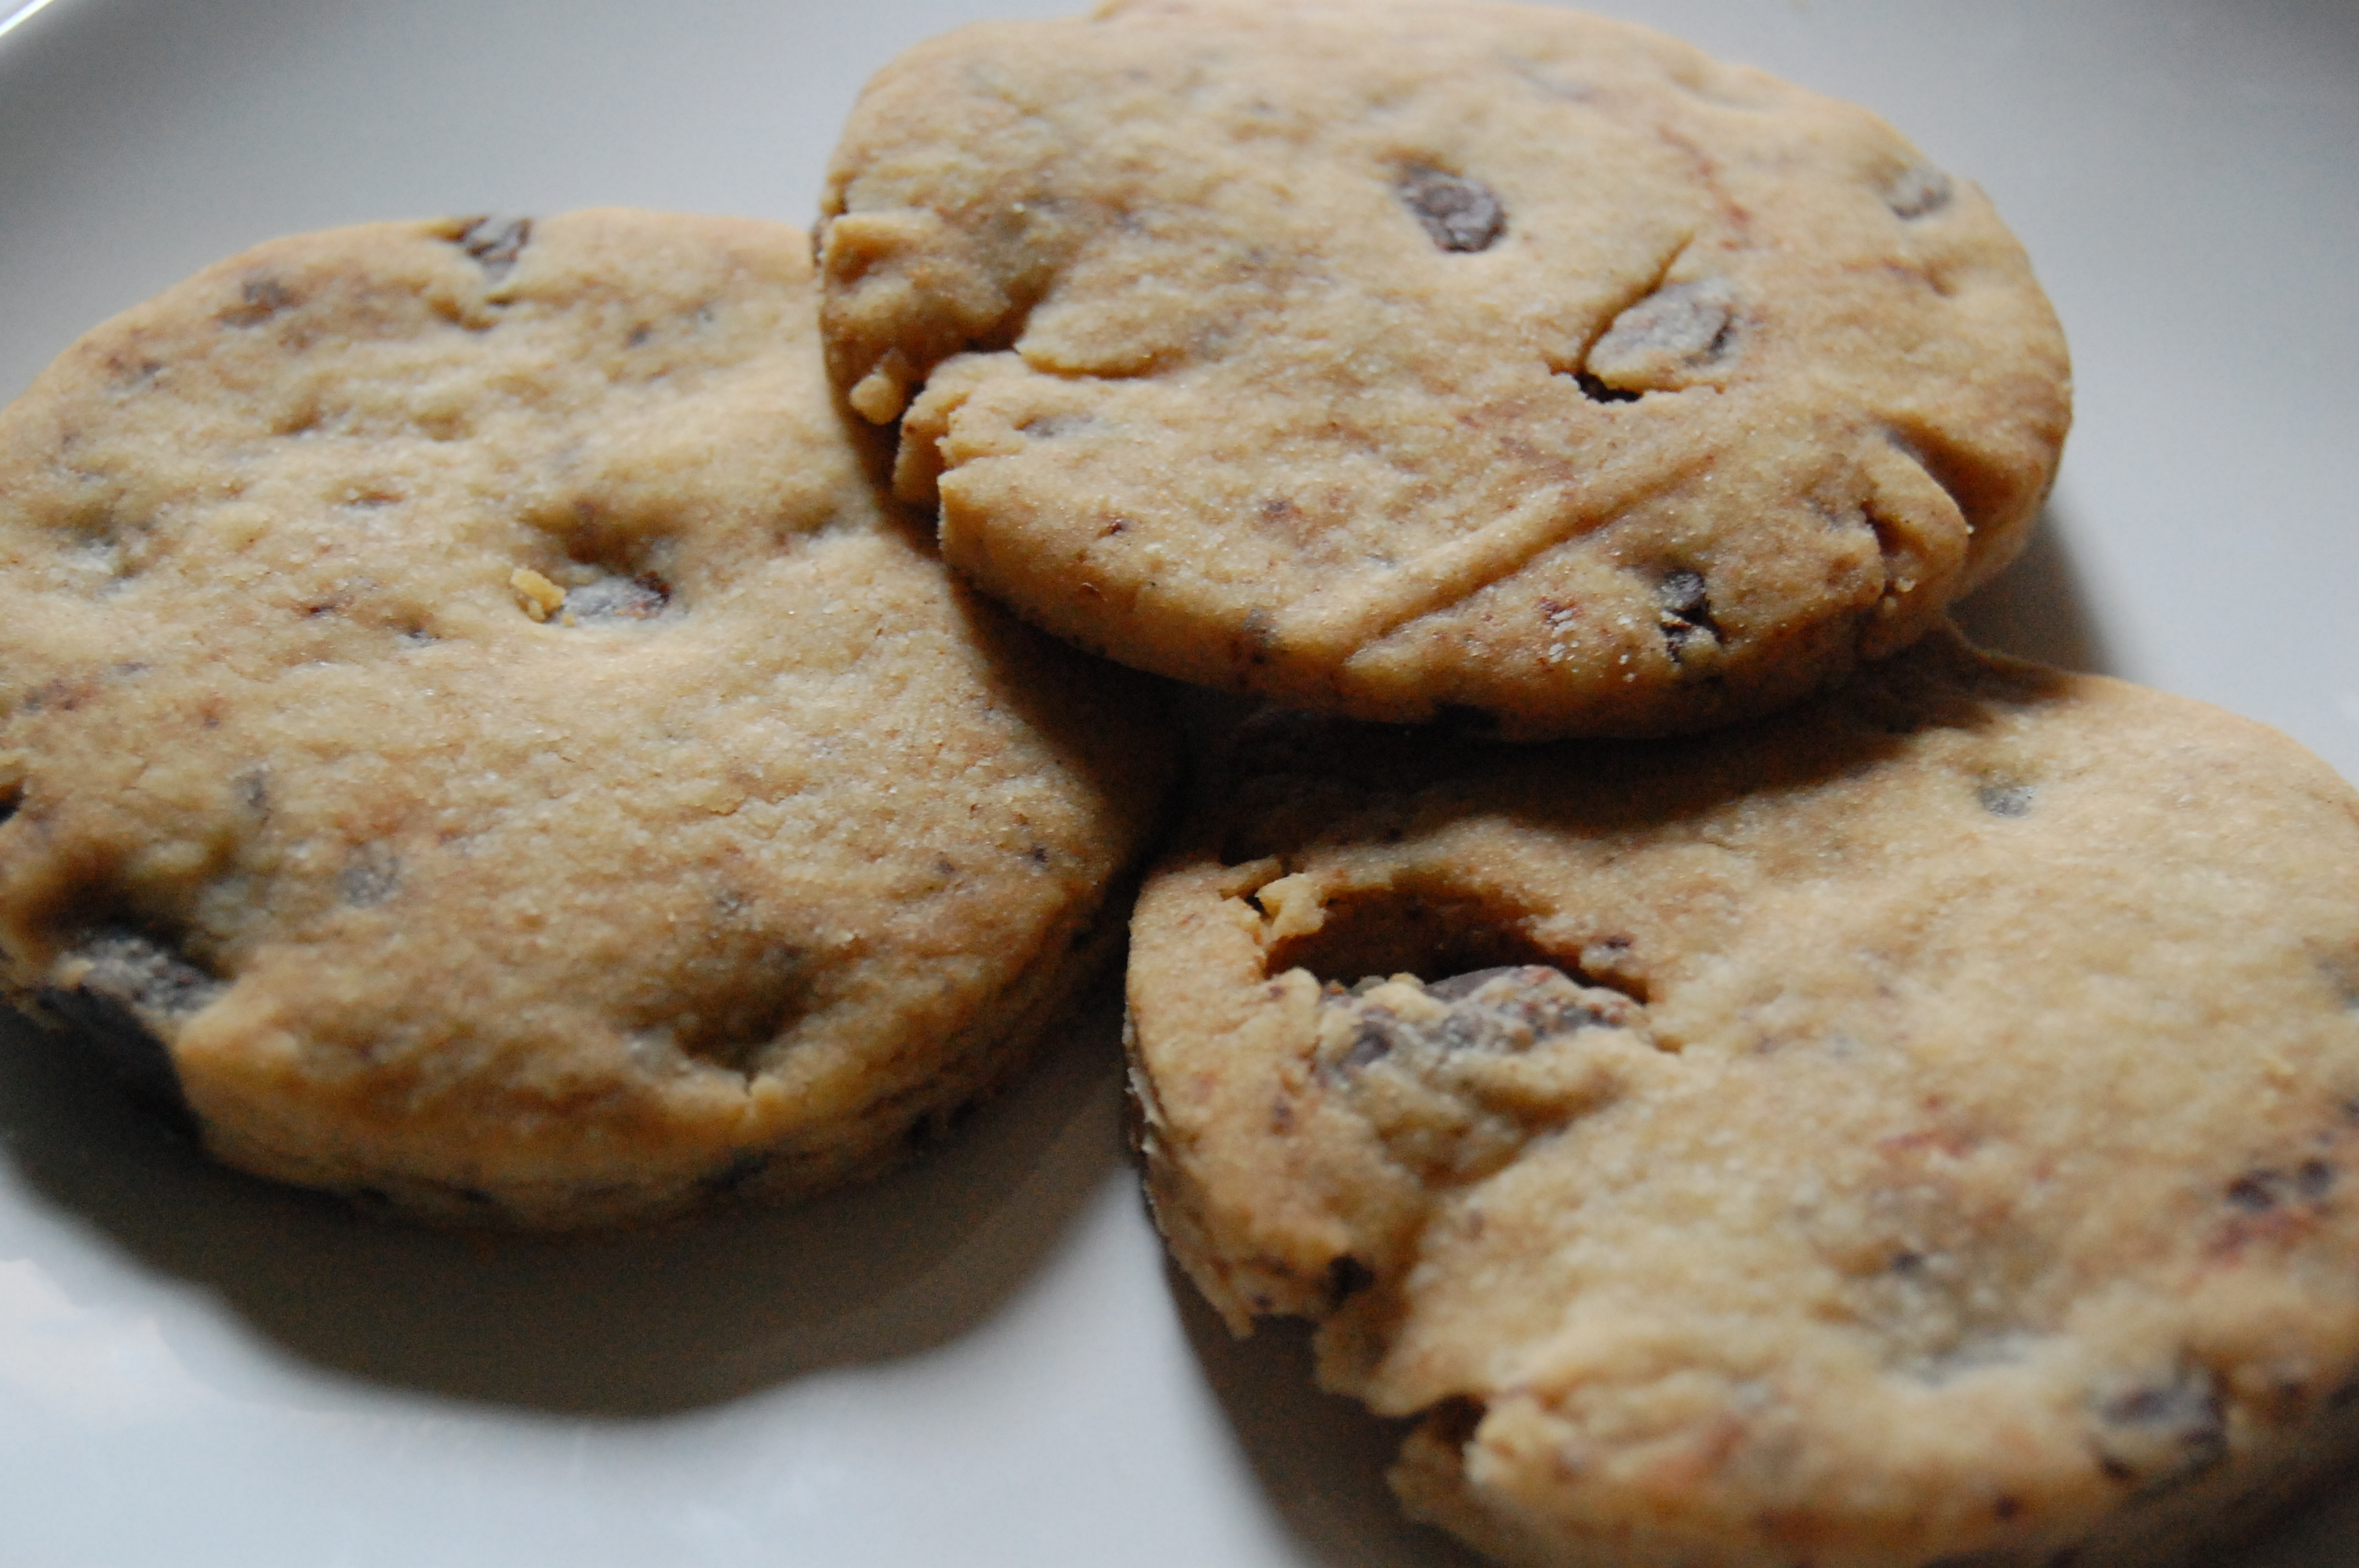 file homemade chocolate chip cookies fresh out of the